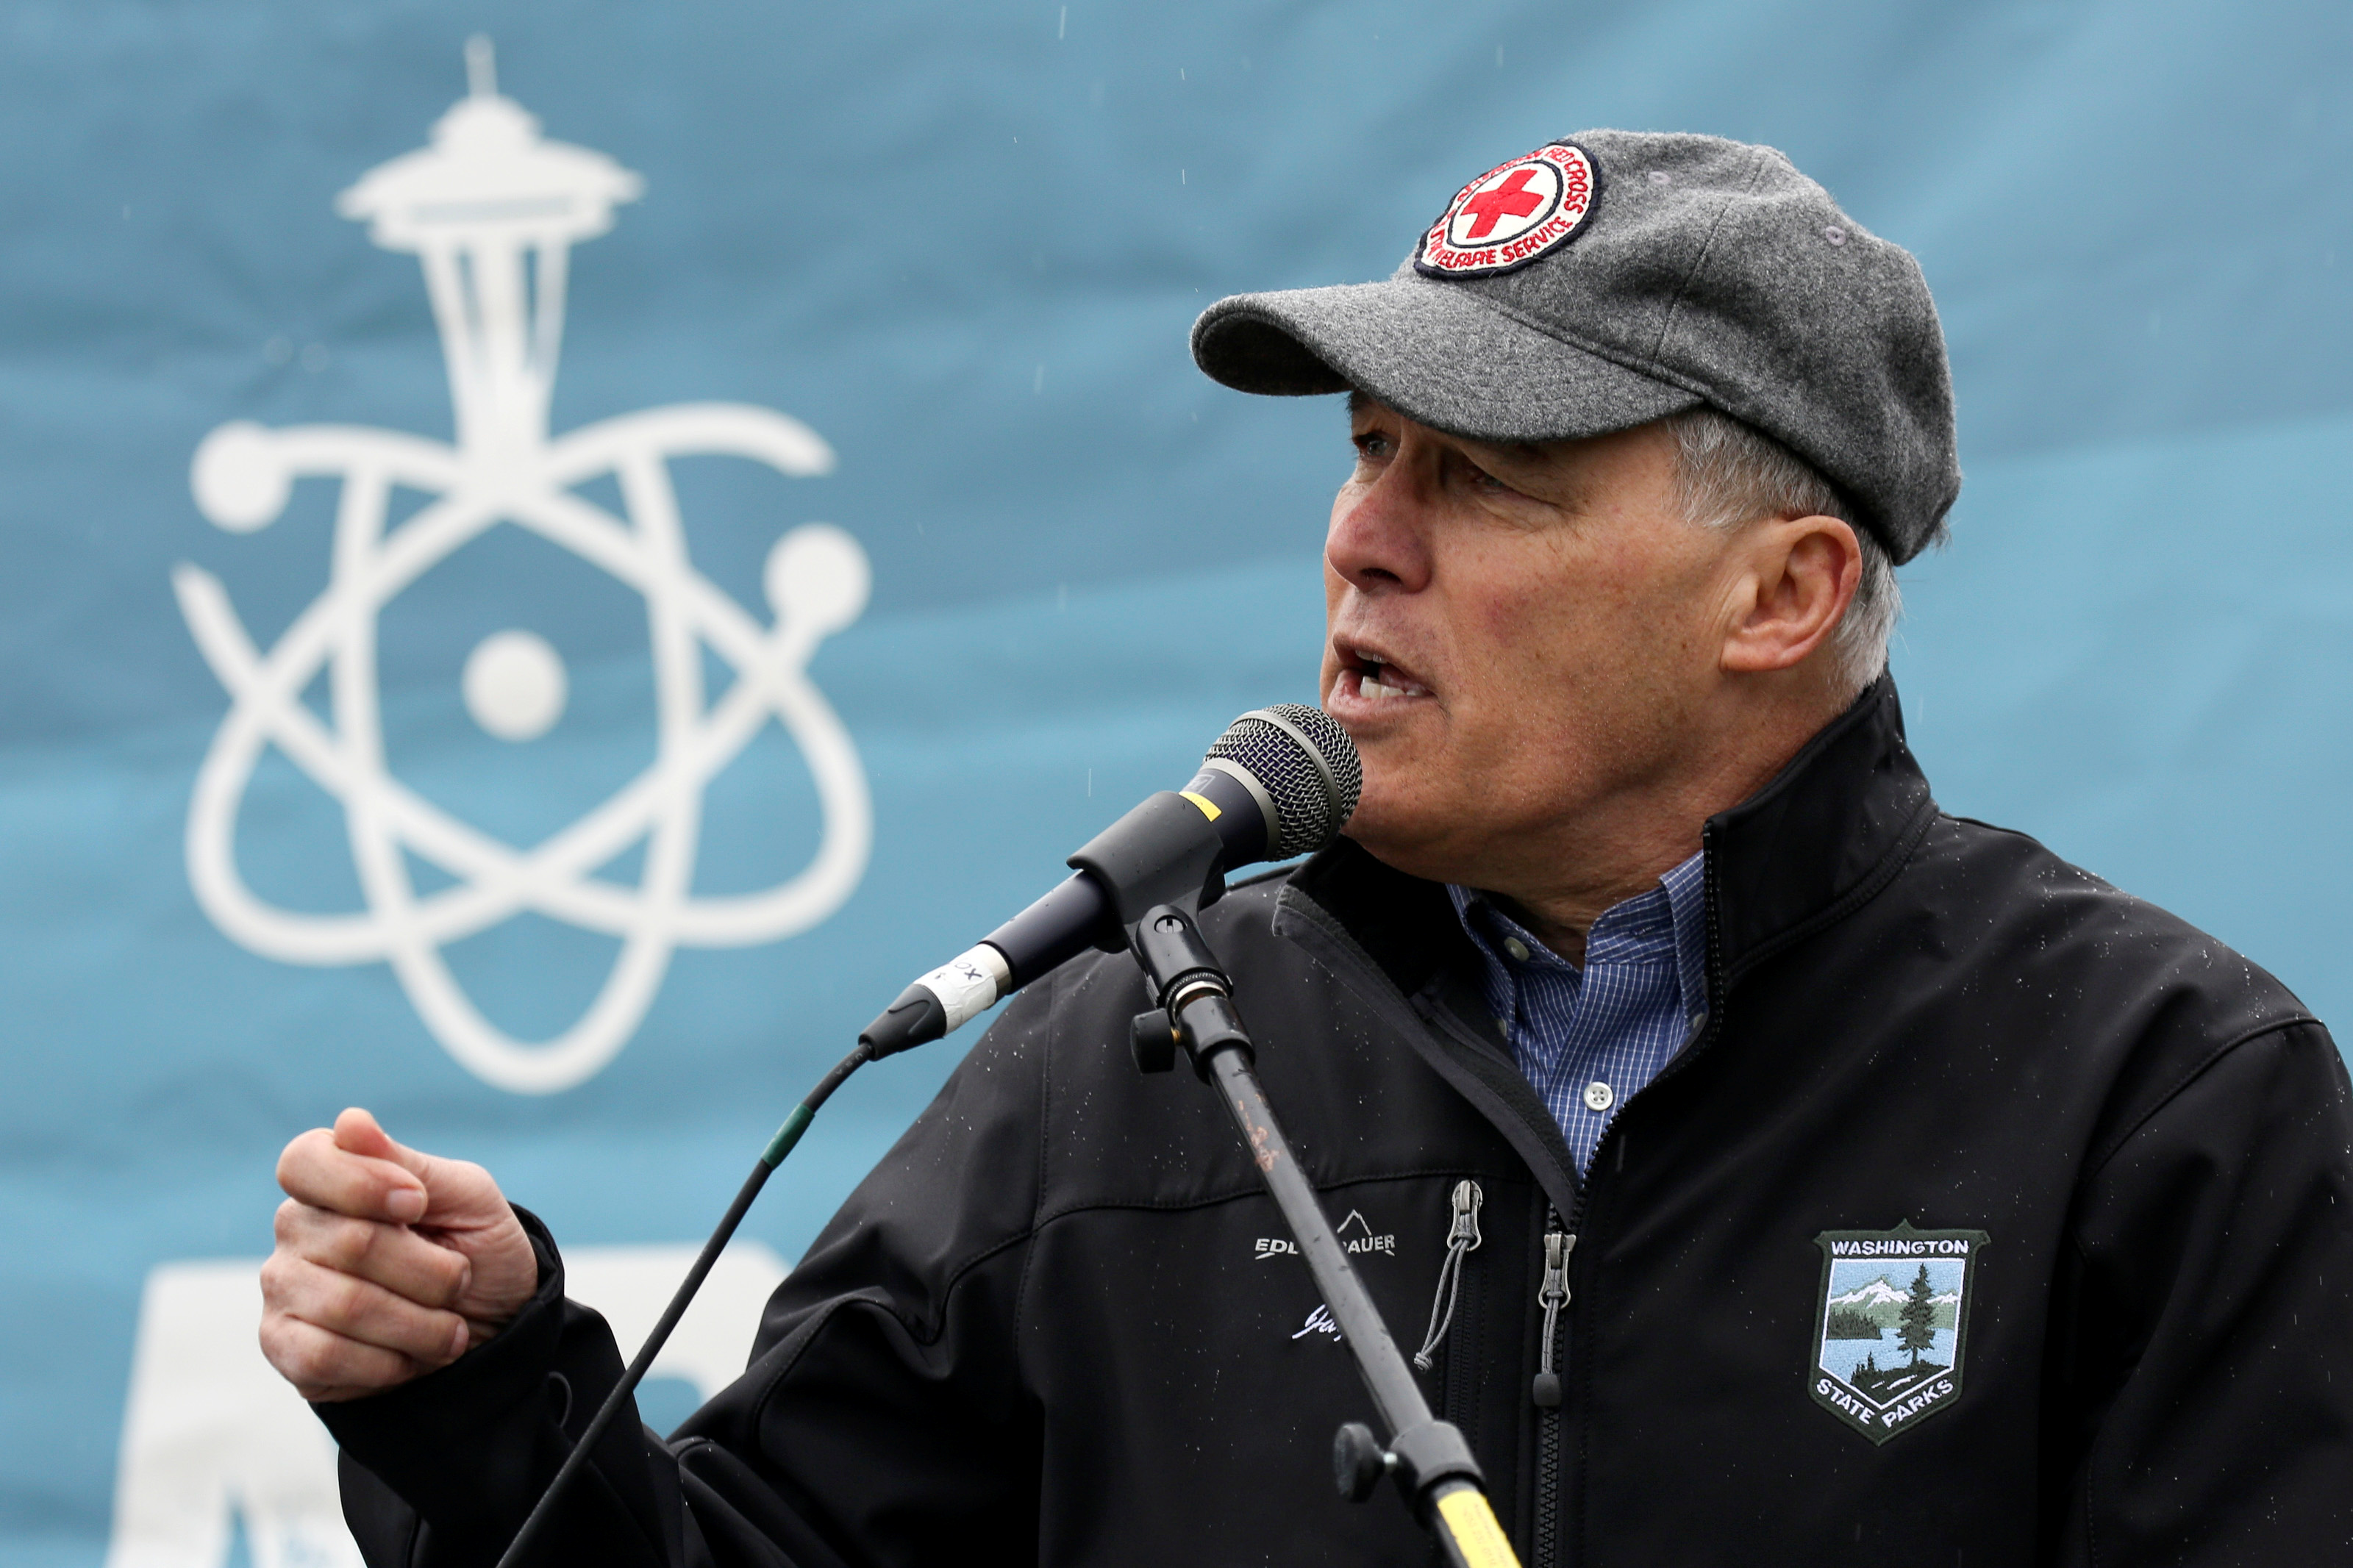 Washington Governor Jay Inslee speaks during a rally at the beginning of the March For Science in Seattle, Washington